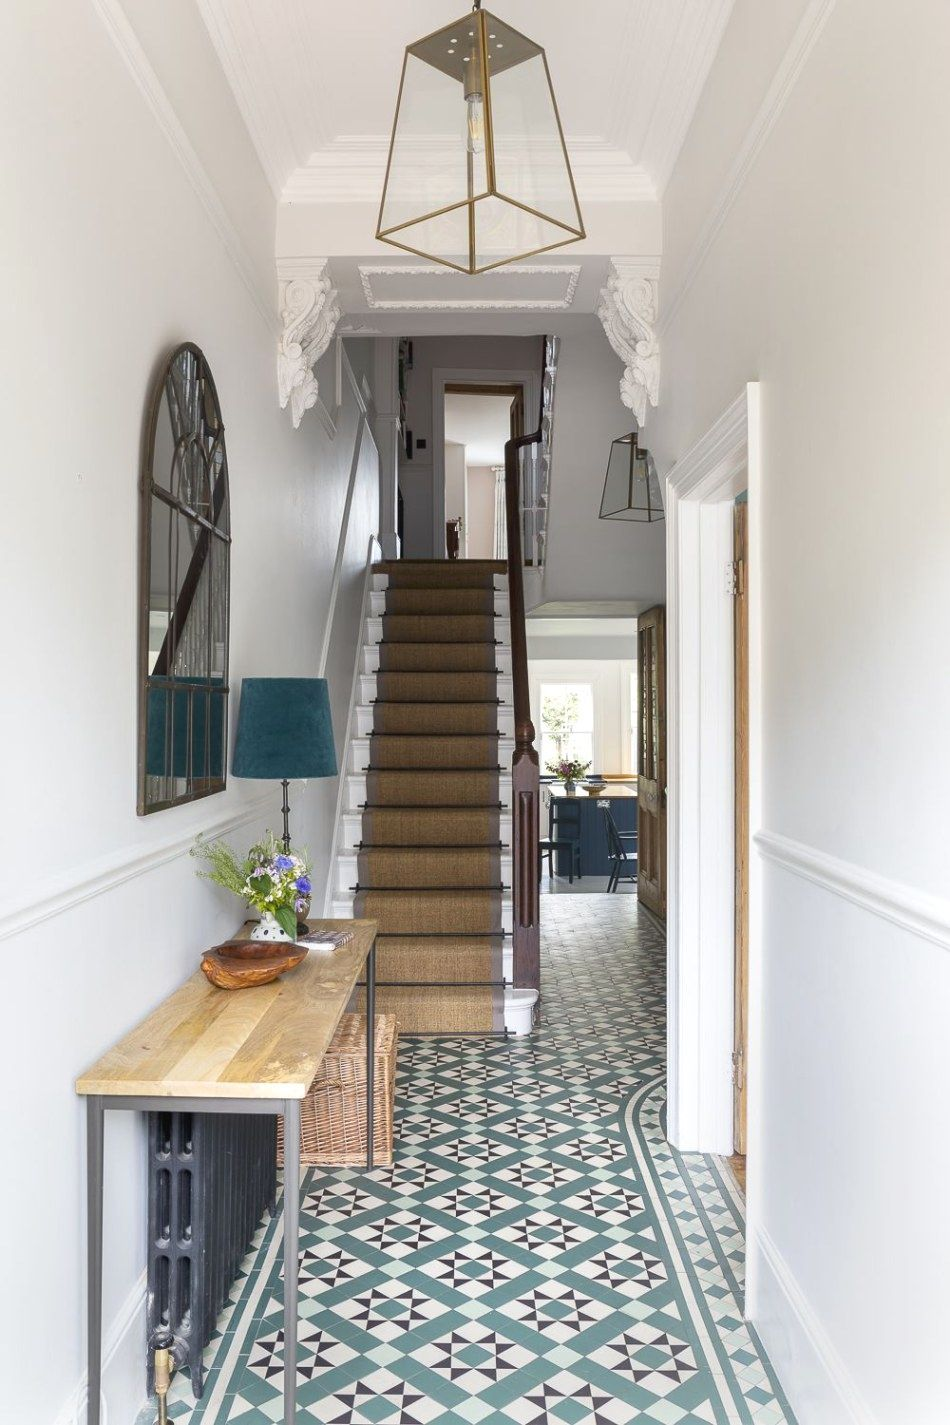 Need To Make Your Household Seem Like New Need To Improve The Attractiveness And Sale Ability Of Your Home In 2020 Hallway Designs Victorian Hallway Victorian Homes